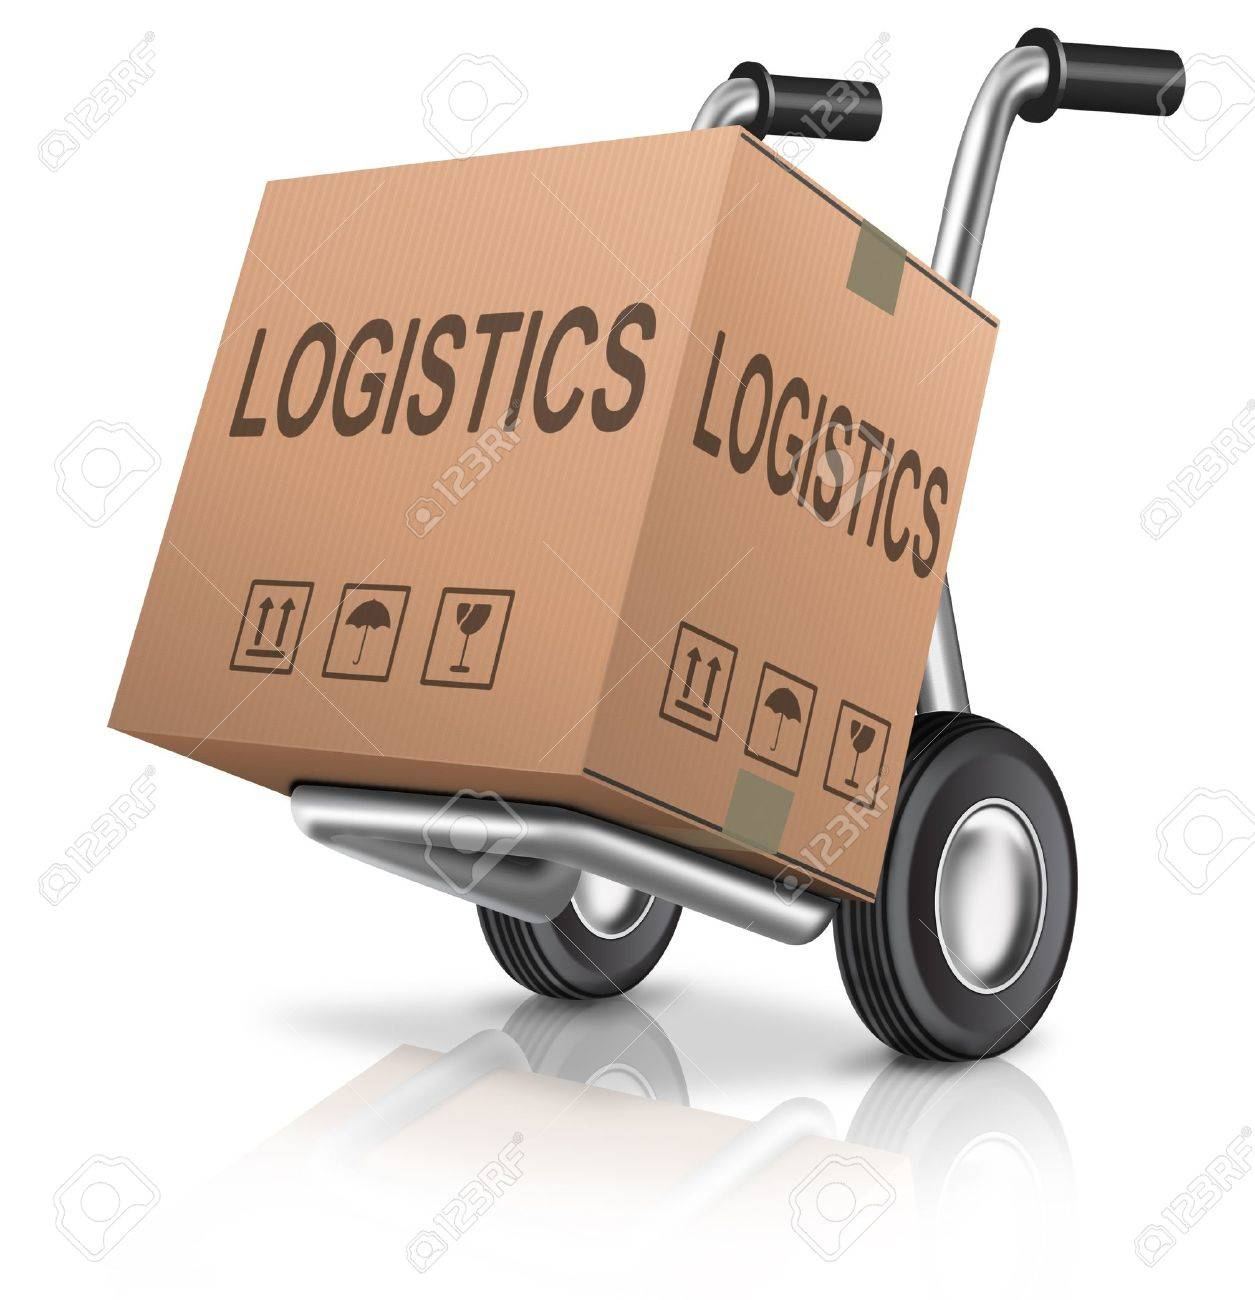 logistics hand truck freight transportation concept for global international trade cardboard box with text Stock Photo - 13222519